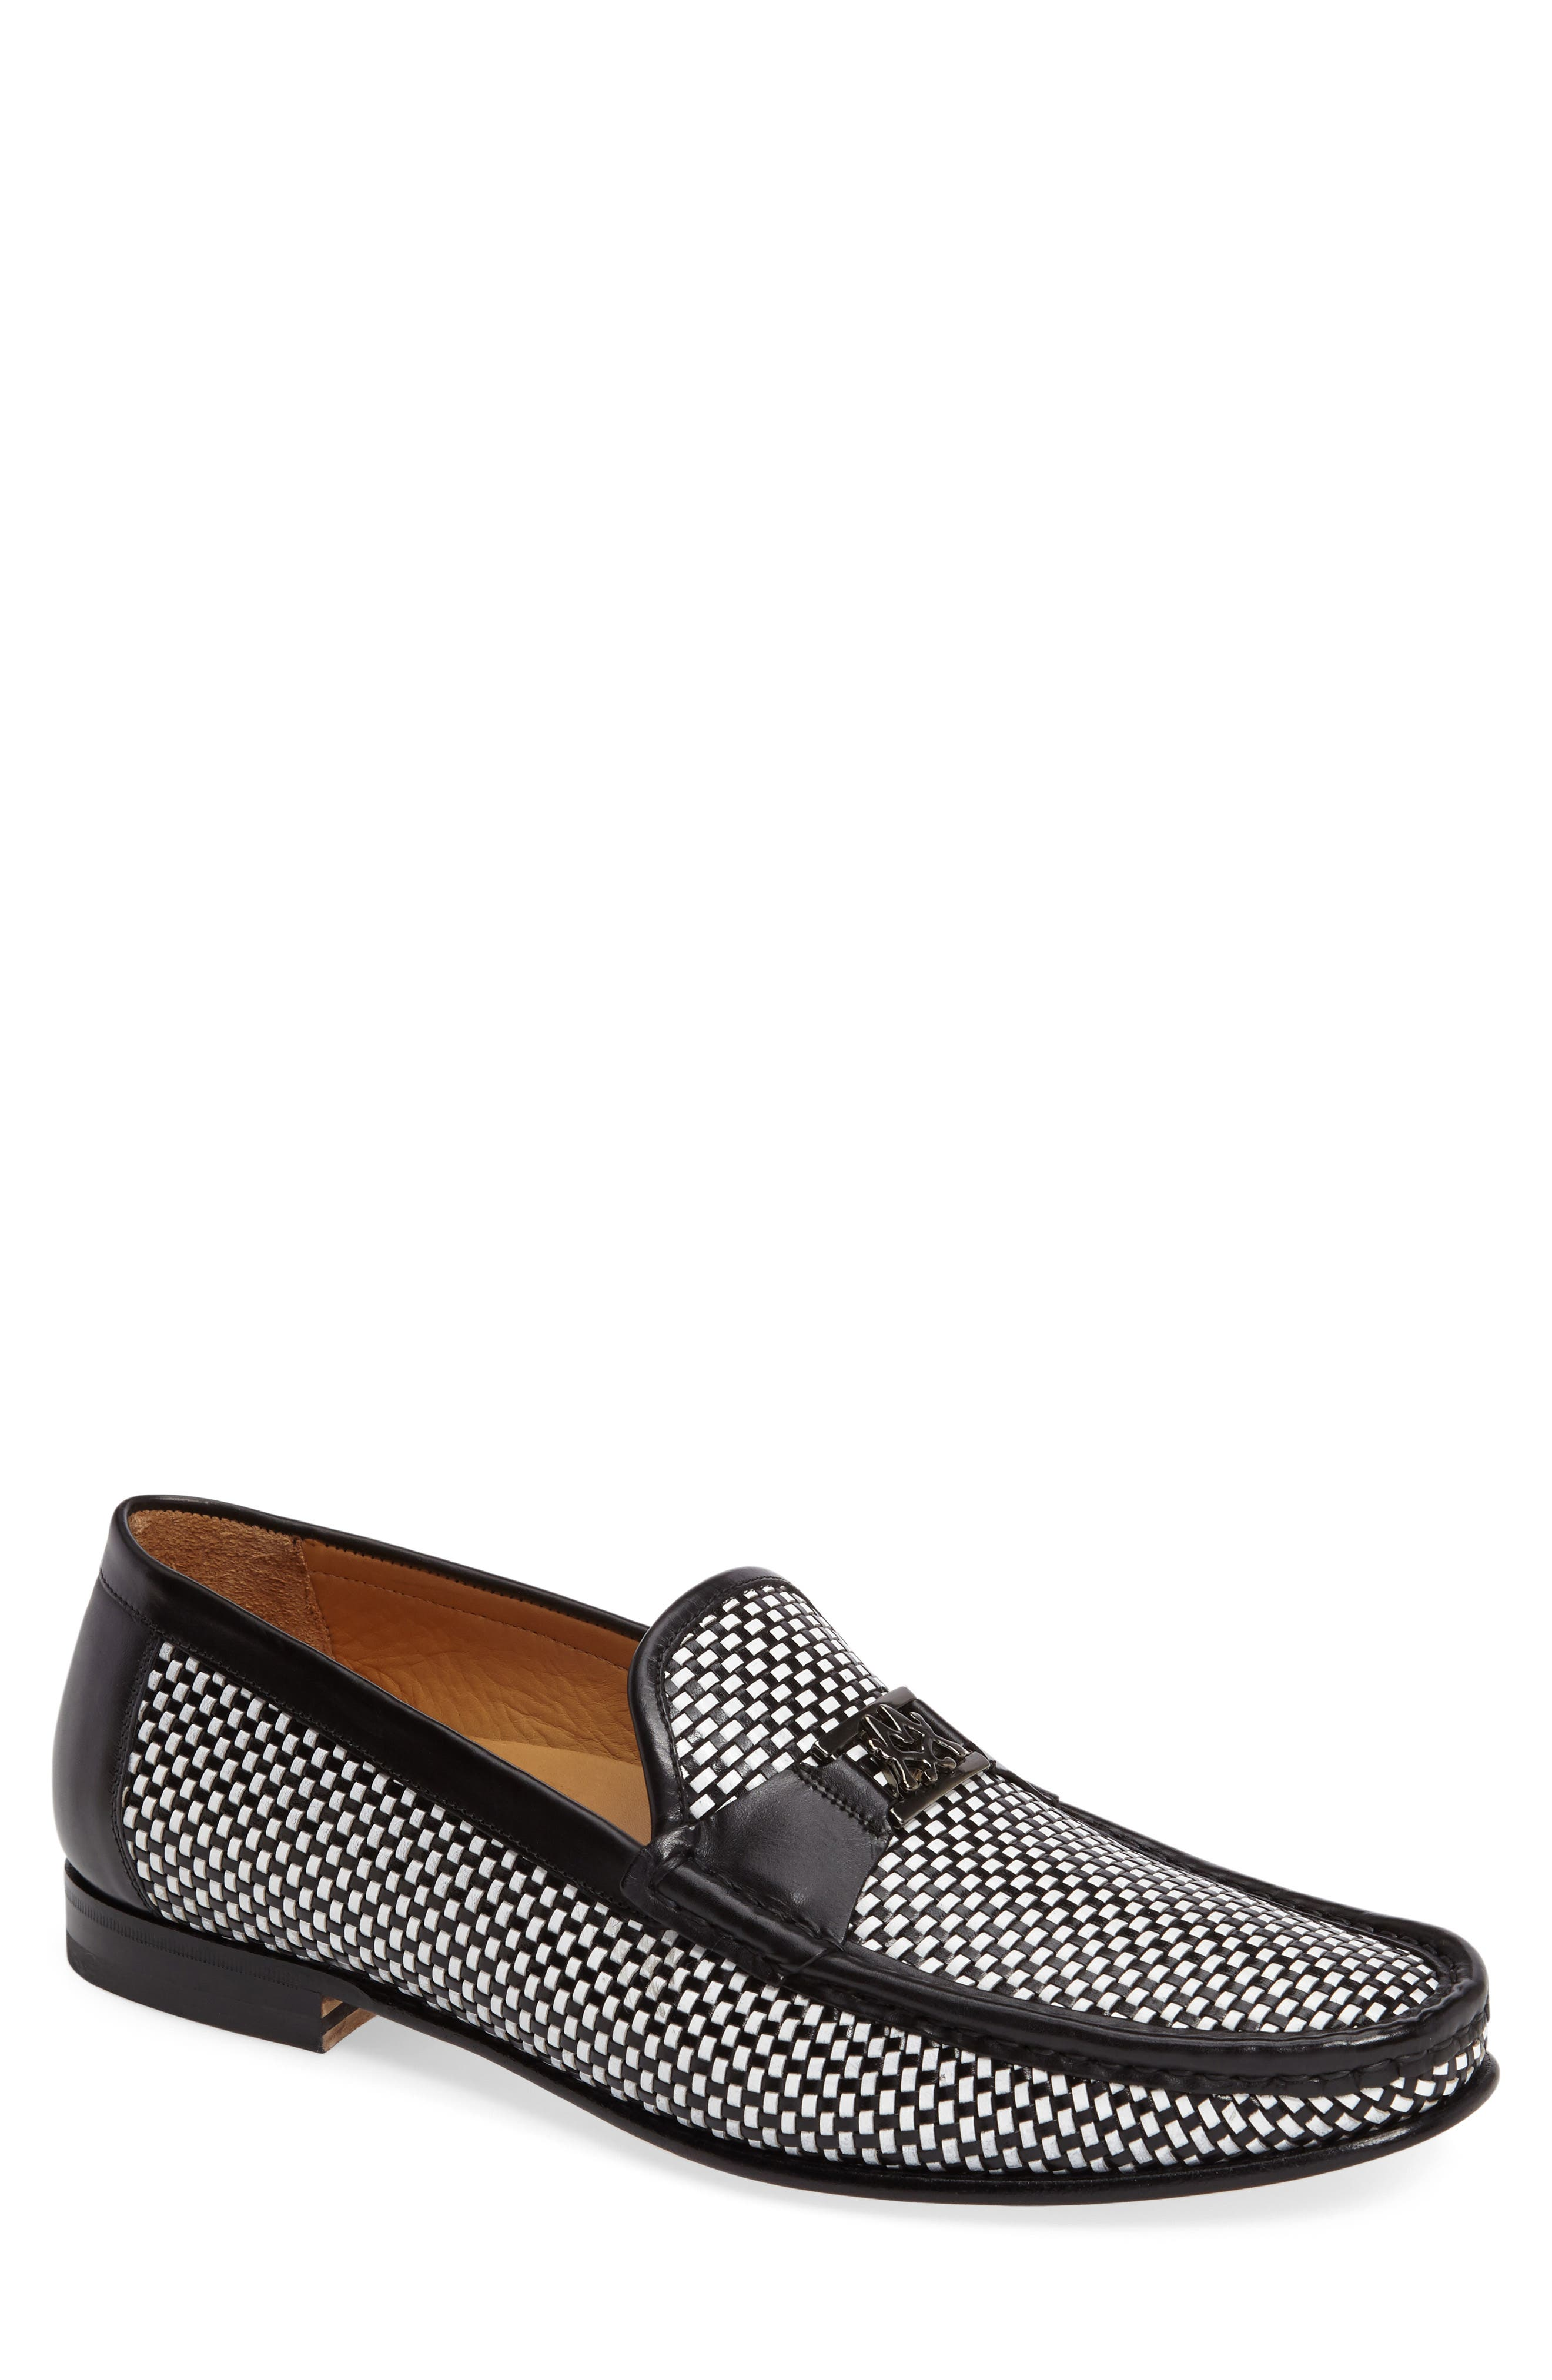 Hallman Woven Loafer,                         Main,                         color, BLACK/ WHITE LEATHER